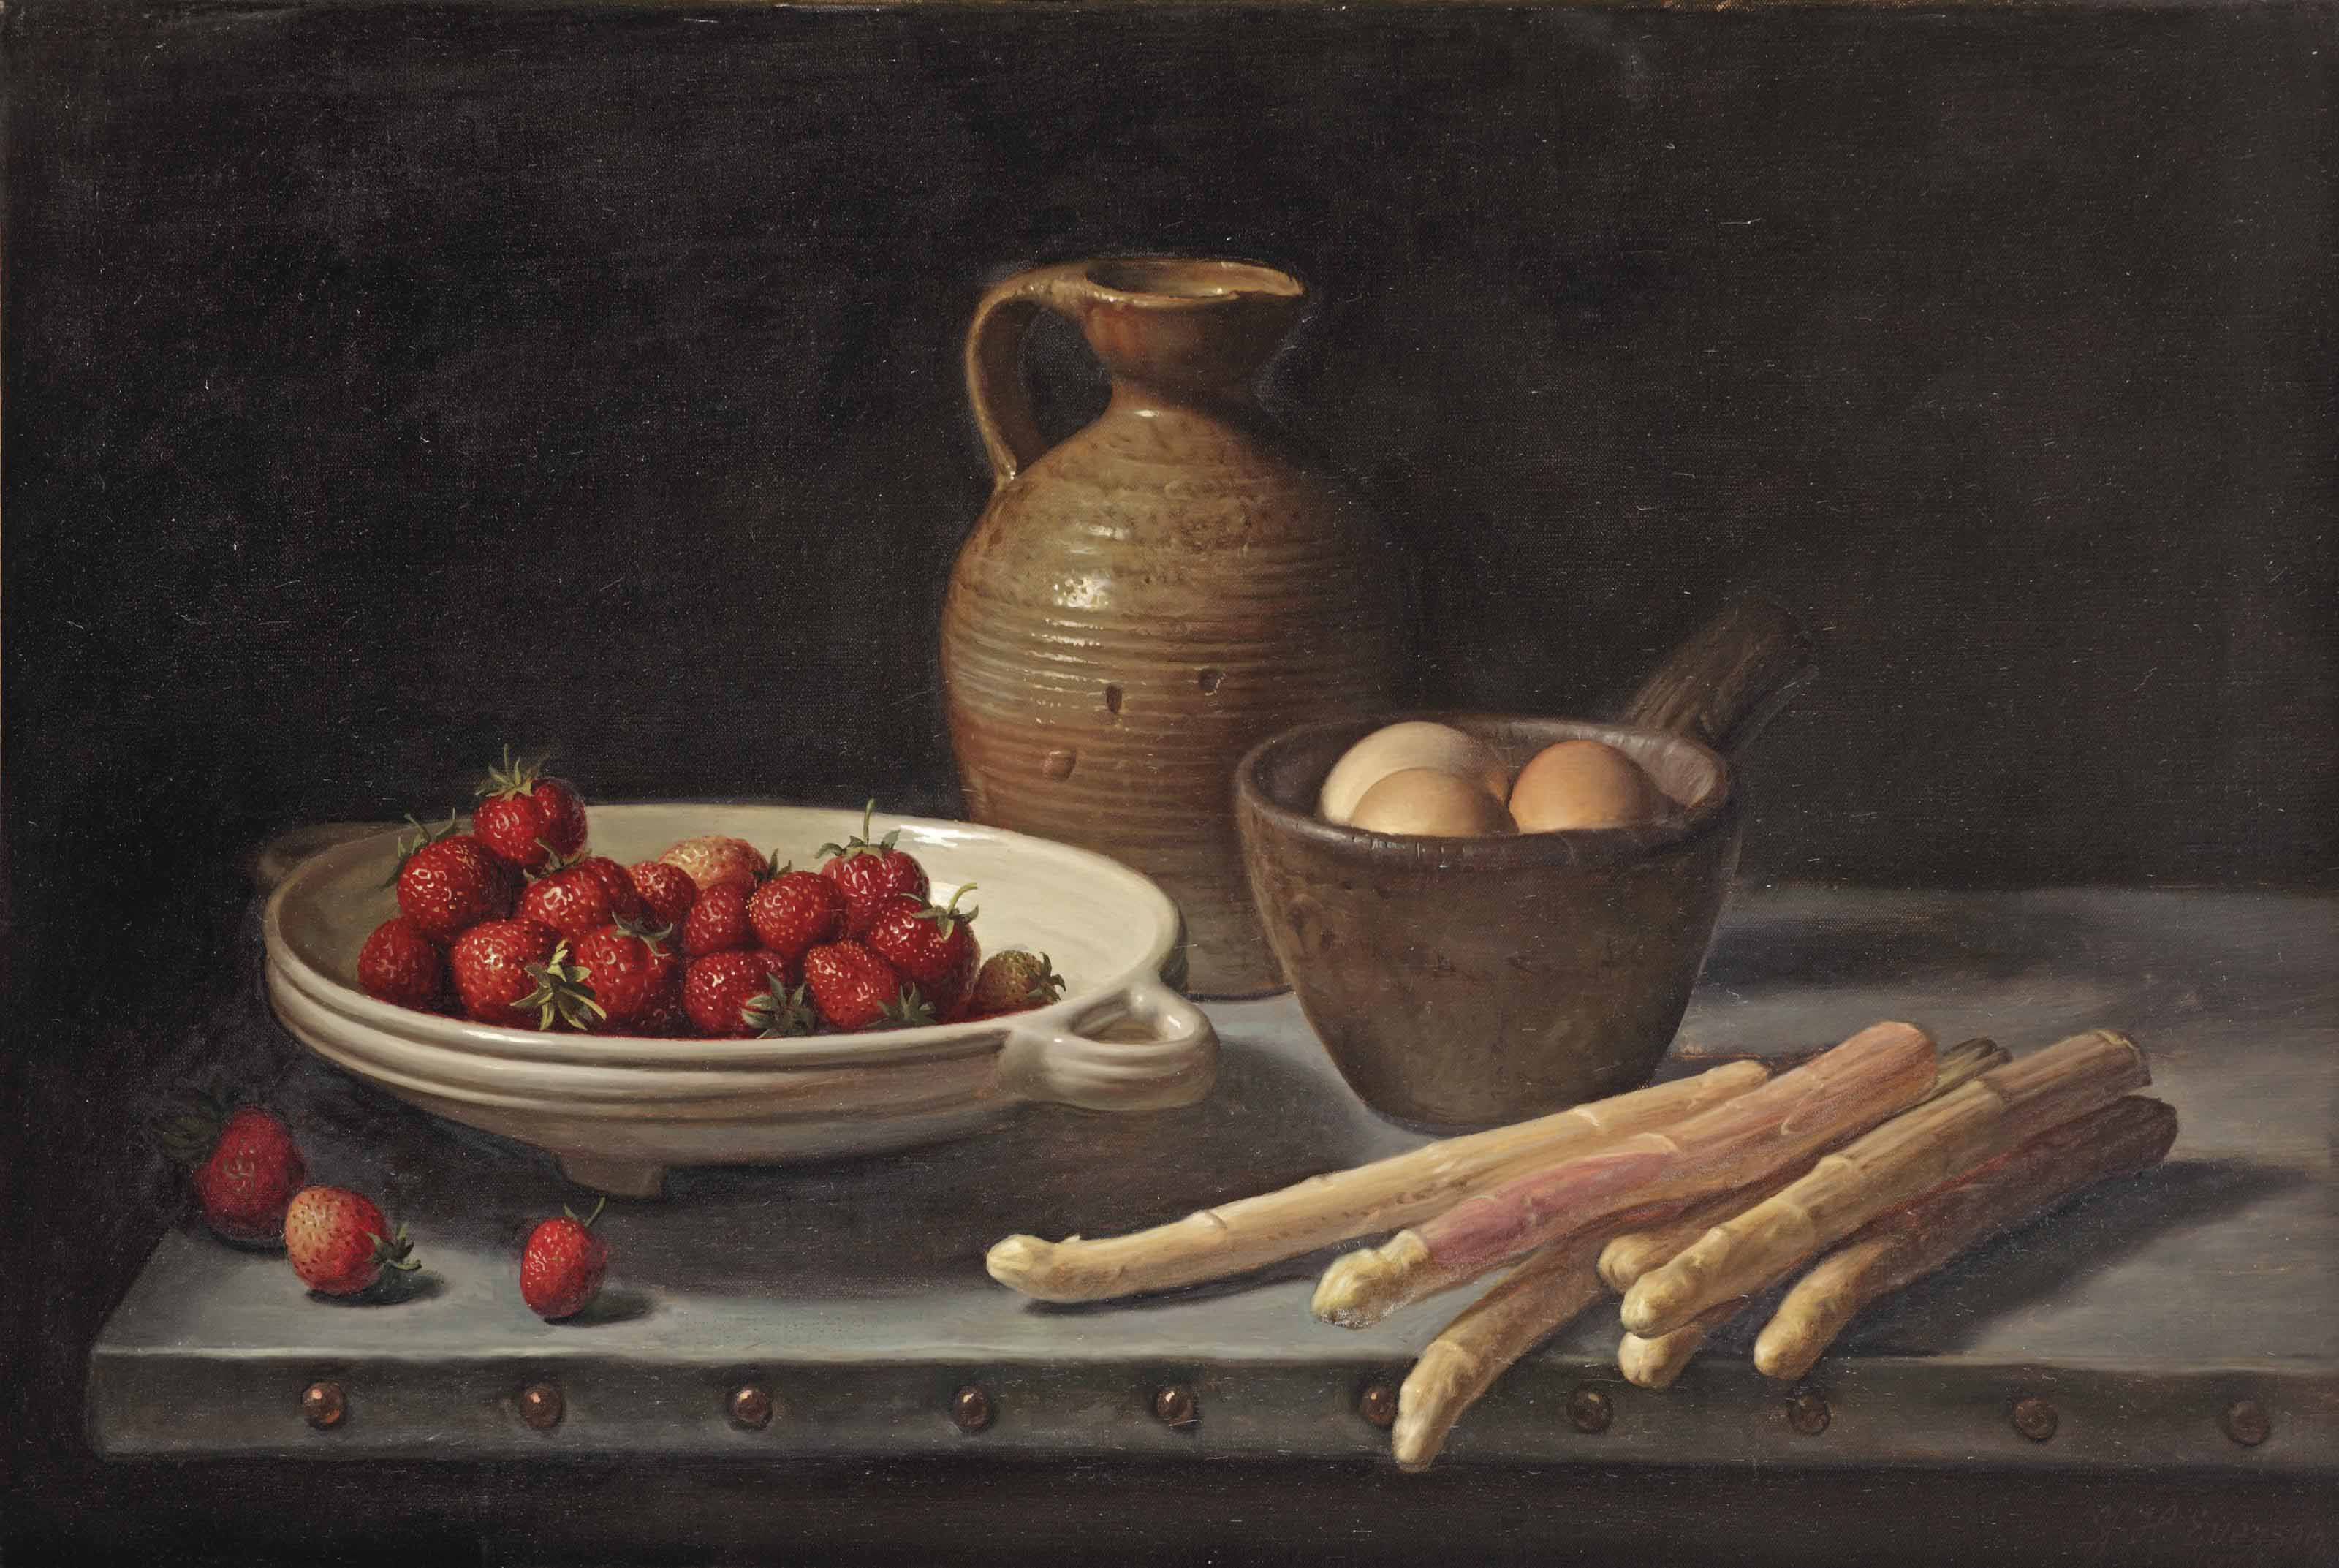 Strawberries, eggs, white asparagus and a stone jug on a table